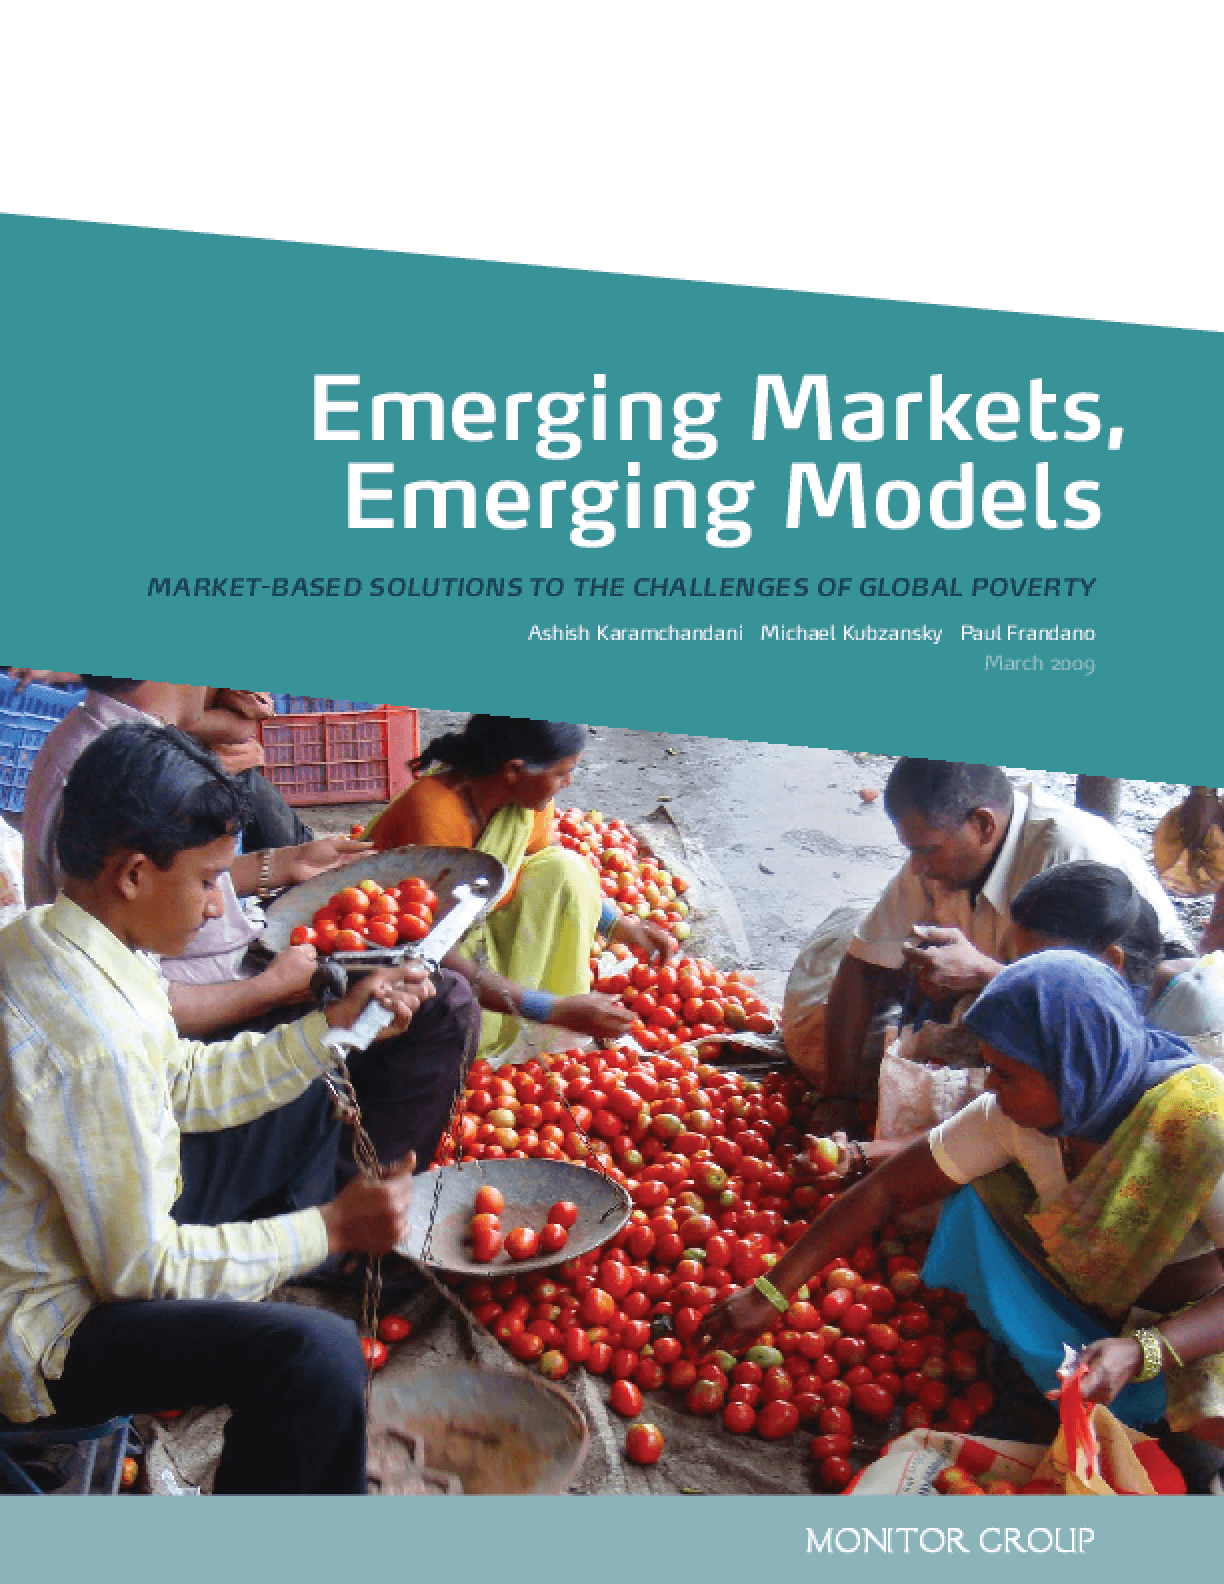 Emerging Markets, Emerging Models: Market-Based Solutions to the Challenges of Global Poverty